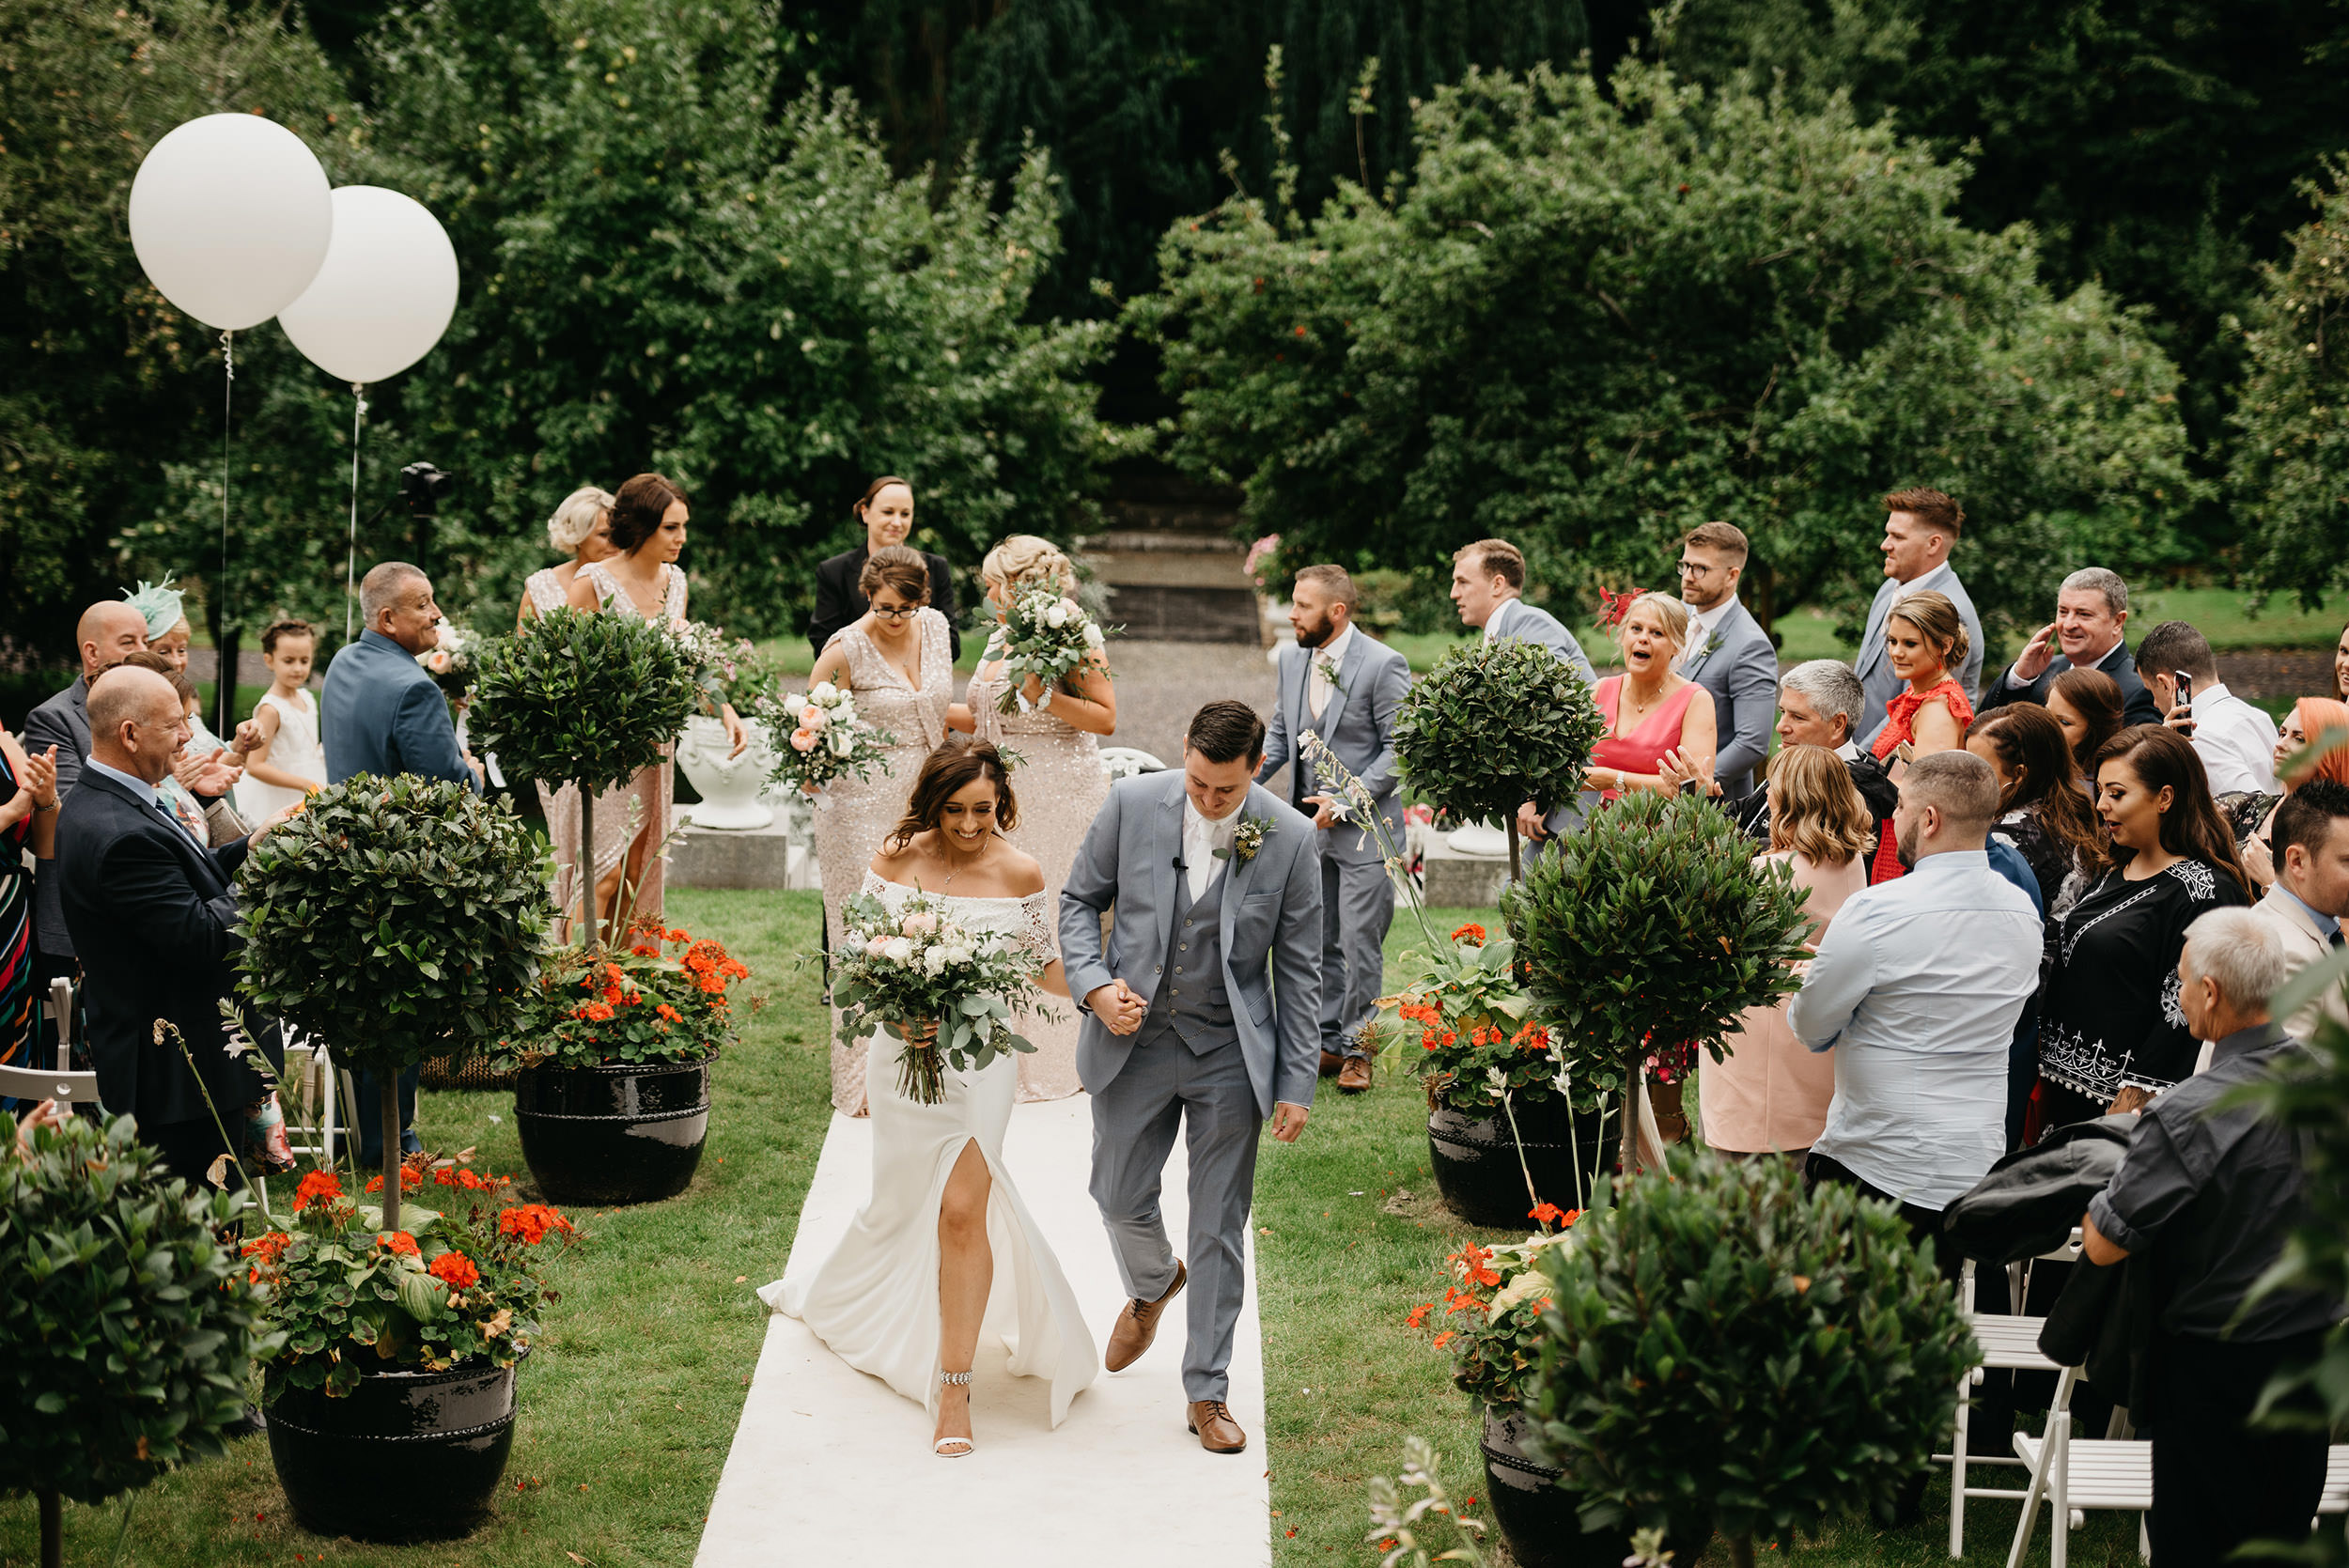 7 The Best Wedding Venues in County Meath | Wedding